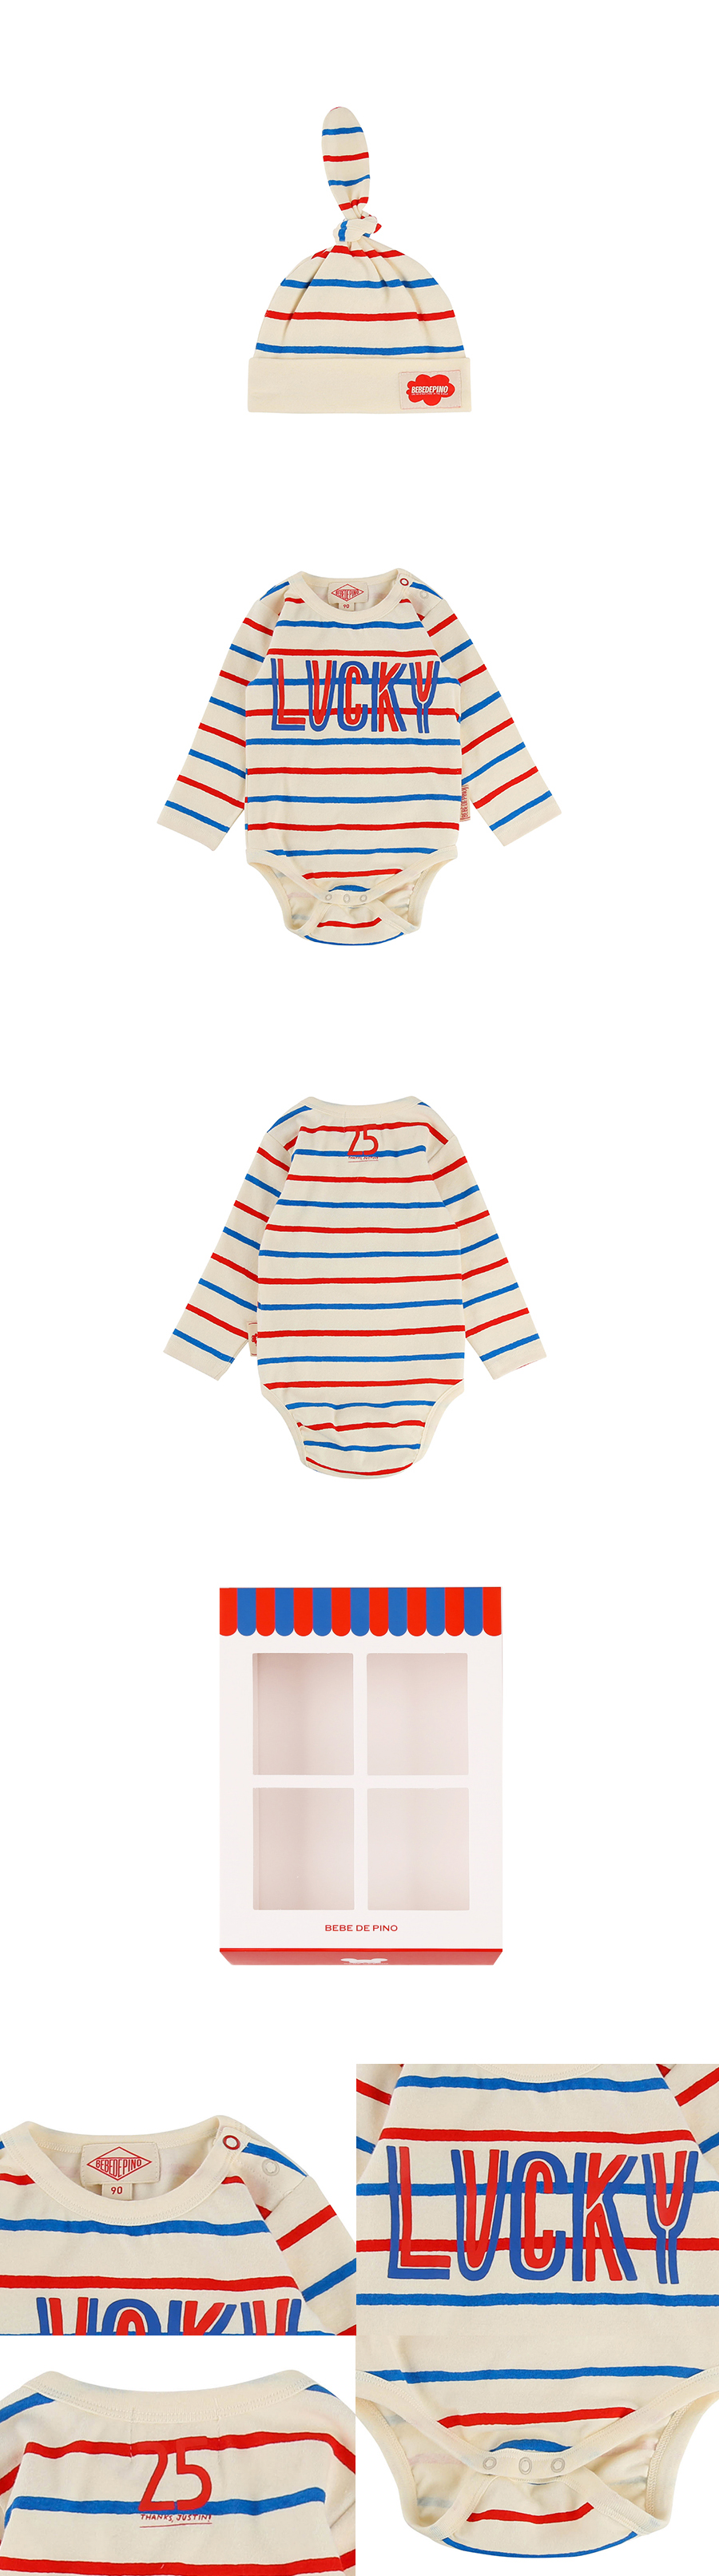 Lucky baby multi stripe bodysuit set 상세 이미지